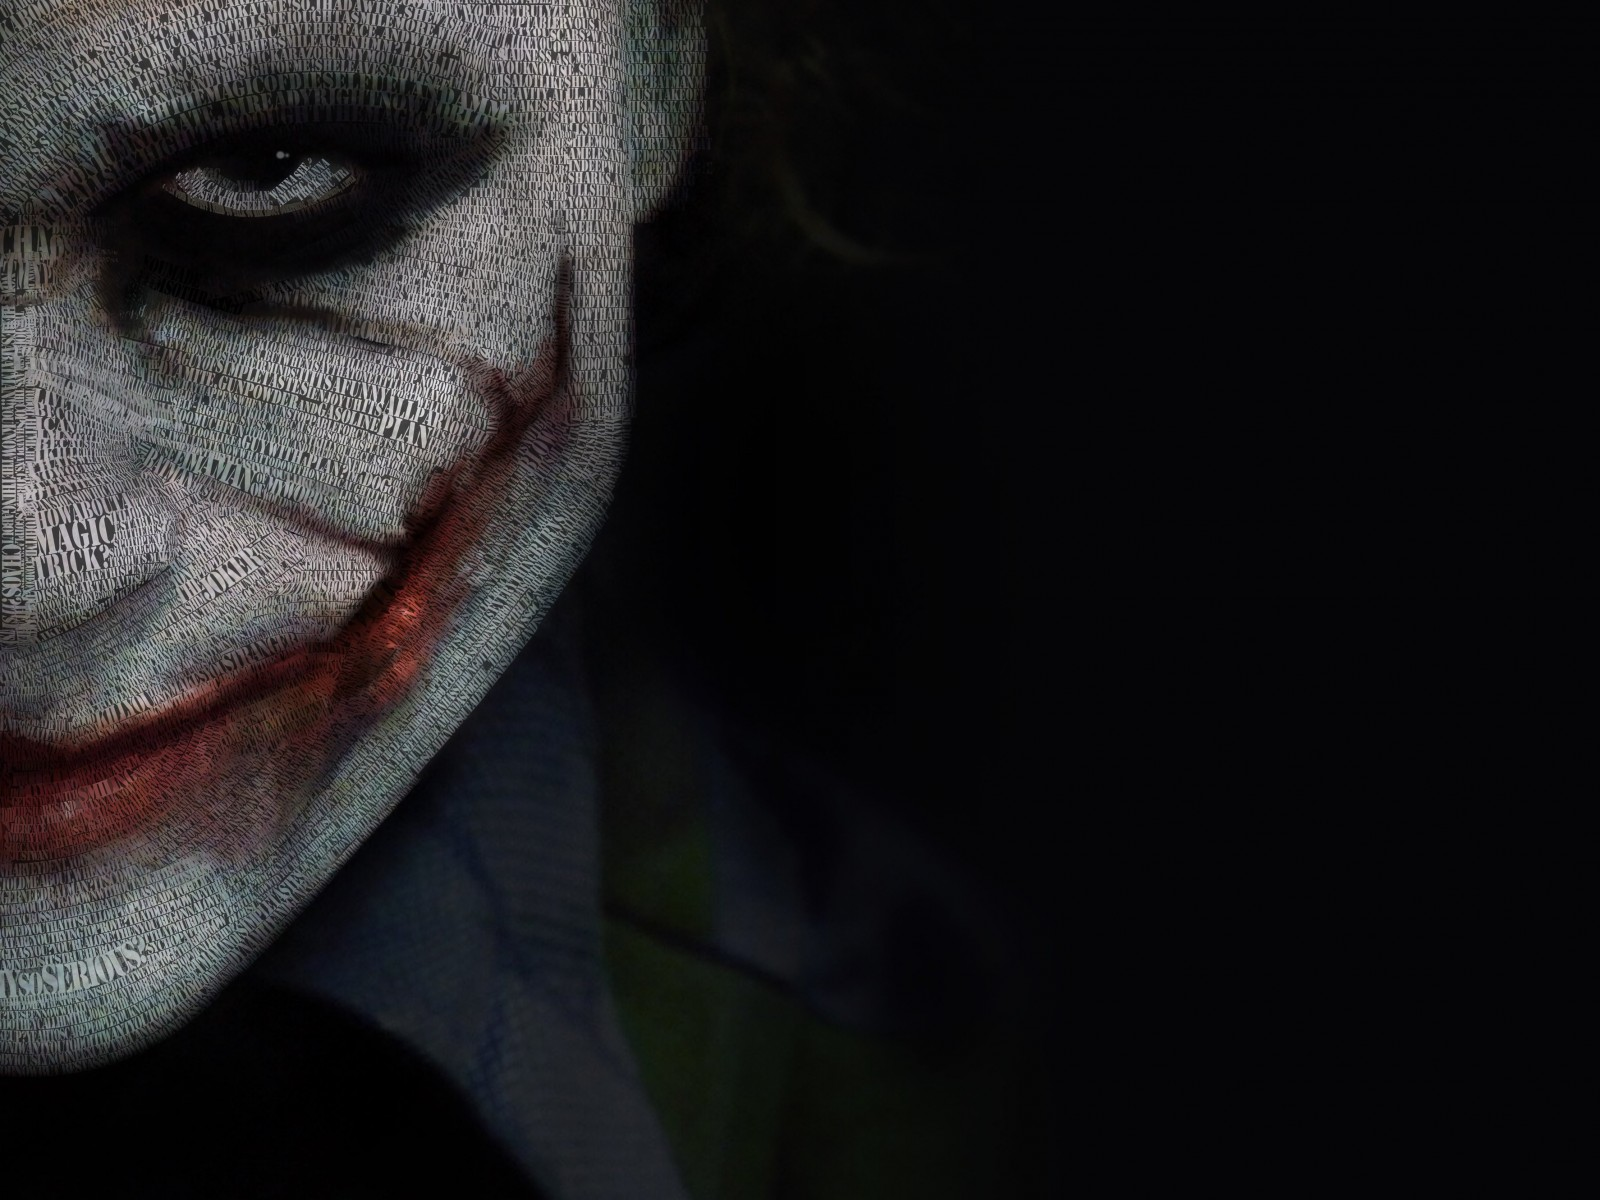 The Joker Typeface Portrait Wallpaper for Desktop 1600x1200